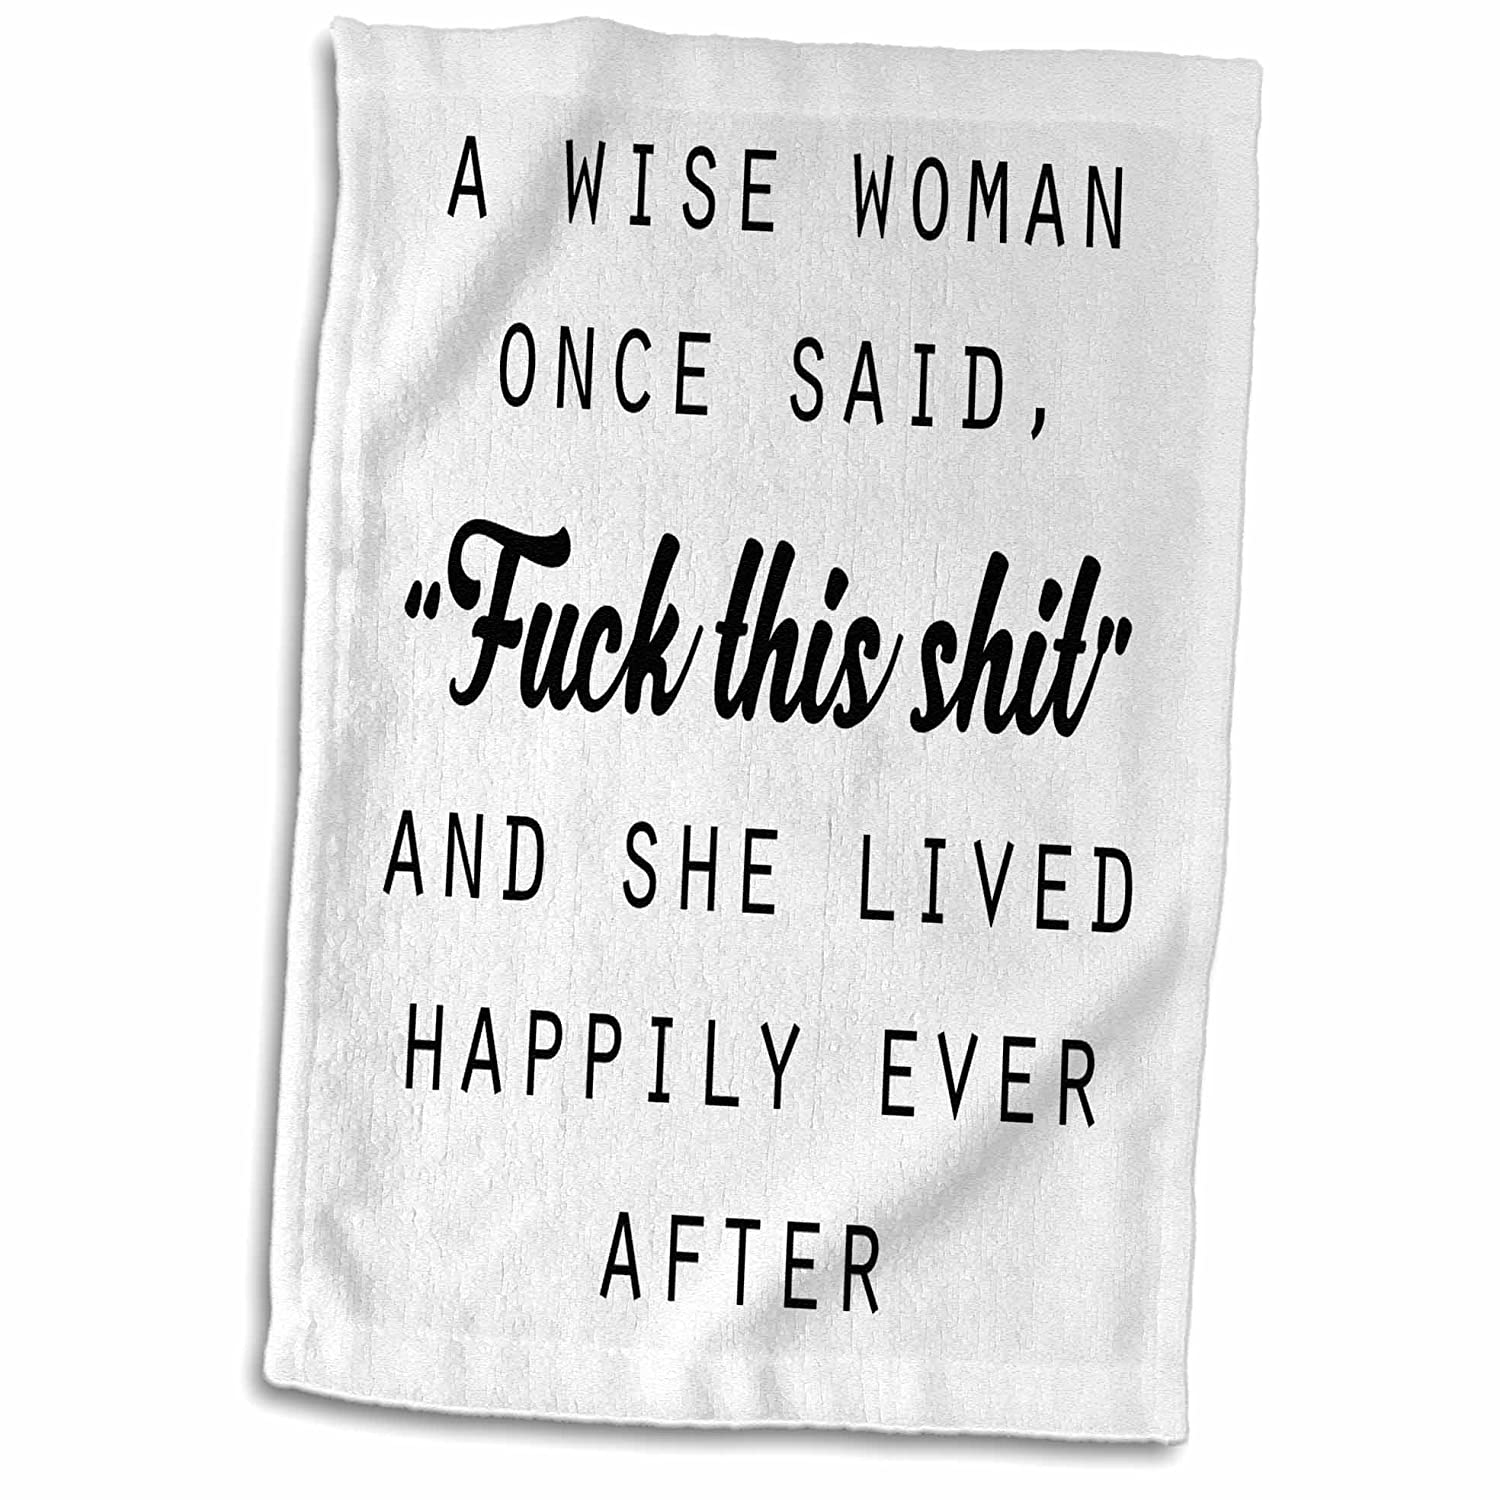 3D Rose A Wise Woman Once Said Fuck This Shit and She Lived Happily Ever After Hand Towel 15 x 22